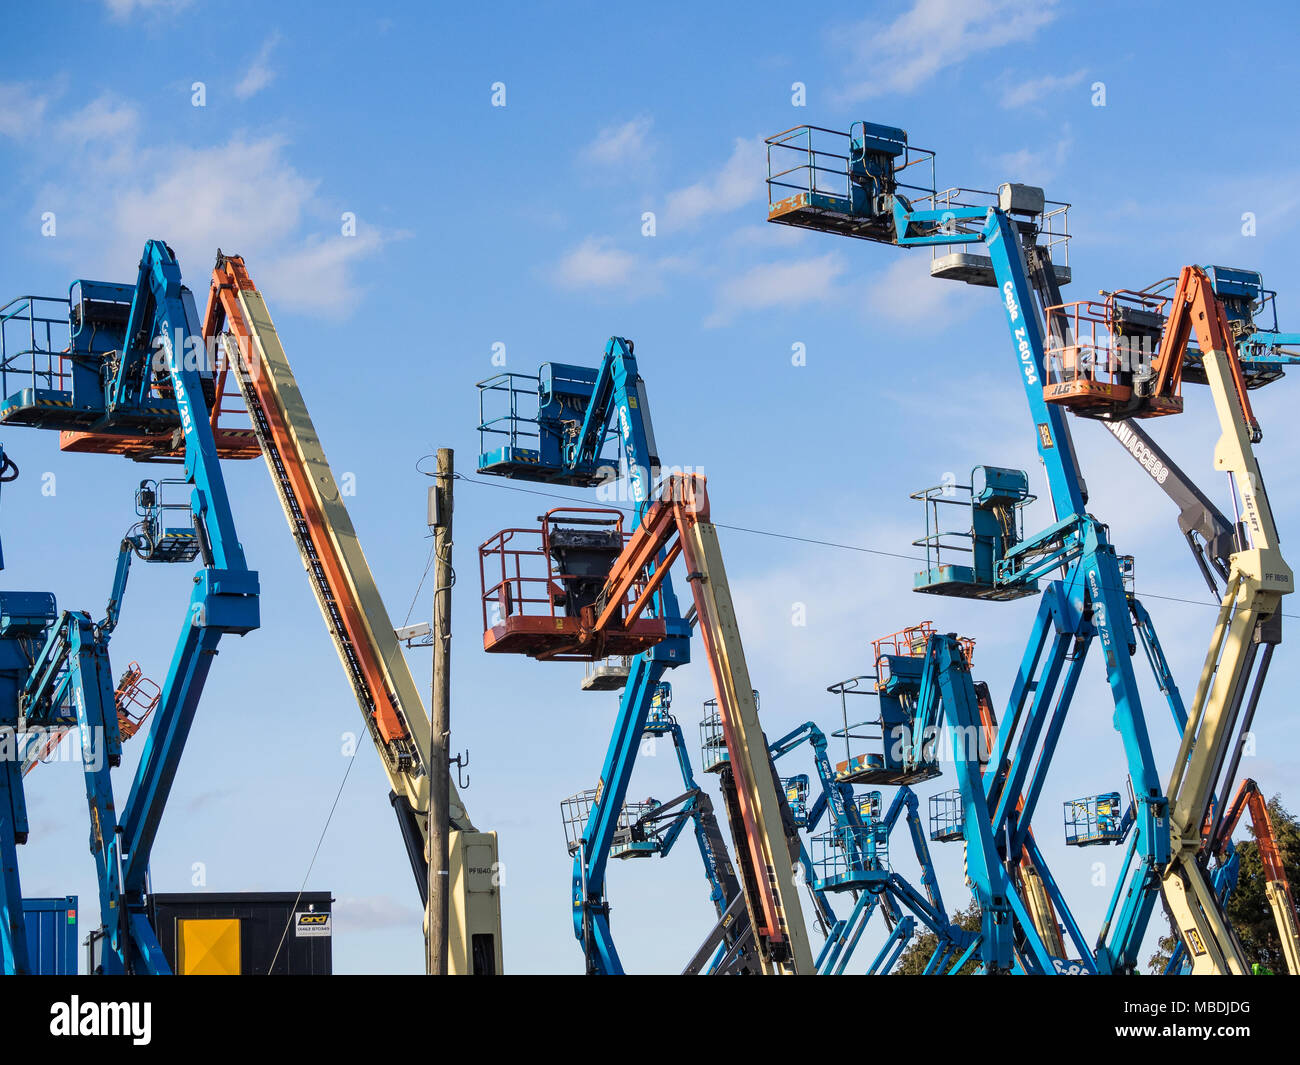 """Aerial work platforms or """"cherrypickers"""". The term """"Cherrypicking"""" has been widely used in the UK/EU Brexit negotiations Stock Photo"""